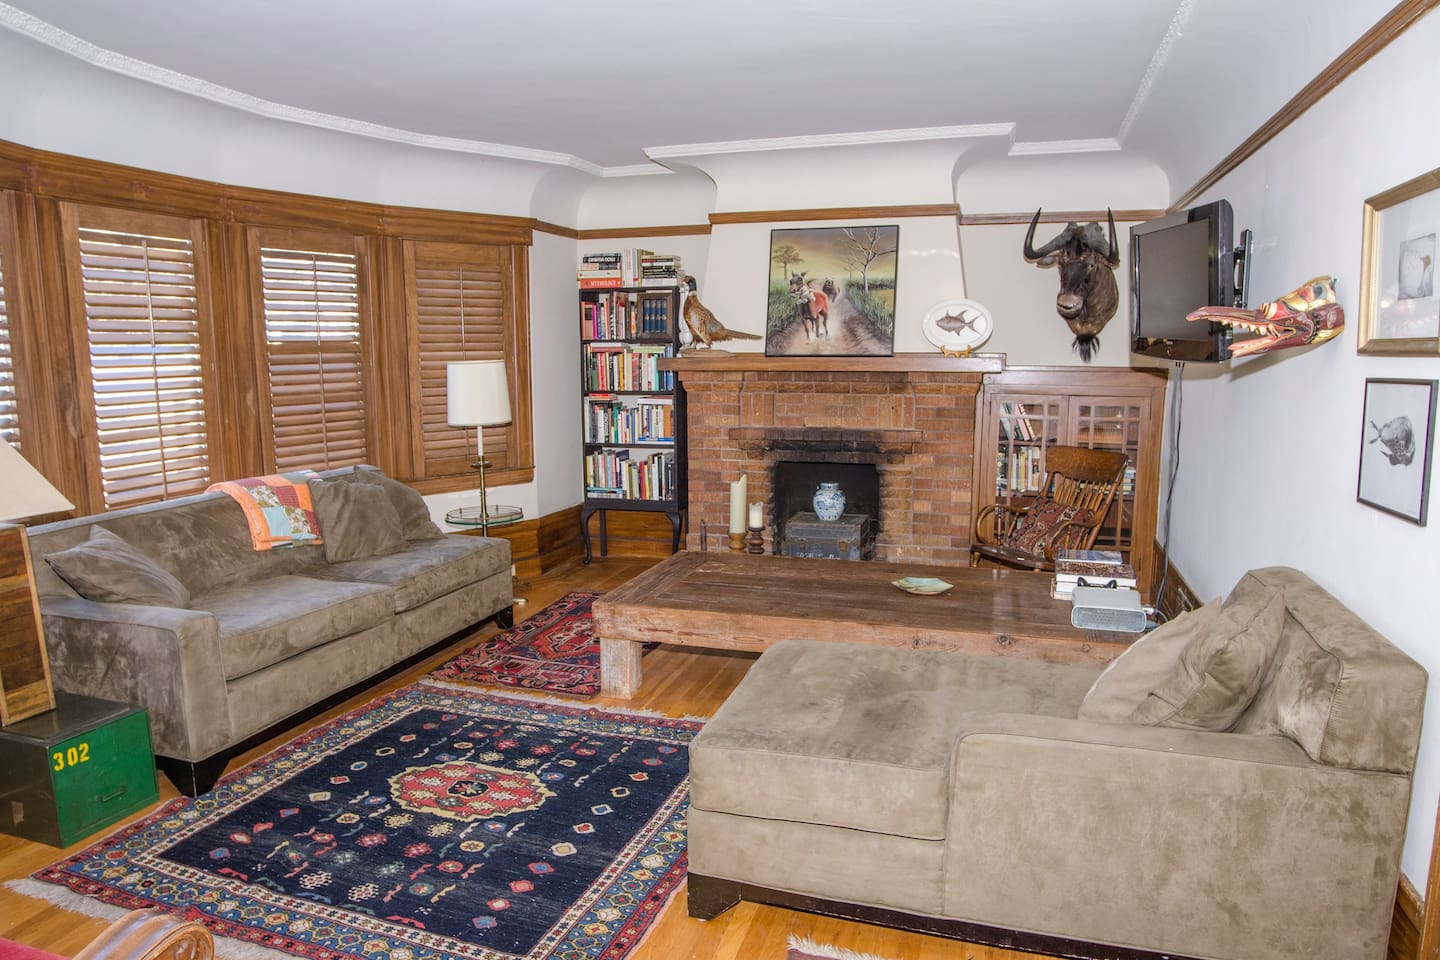 Living room with bay windows, fireplace, two large couches, and hardwood floors.